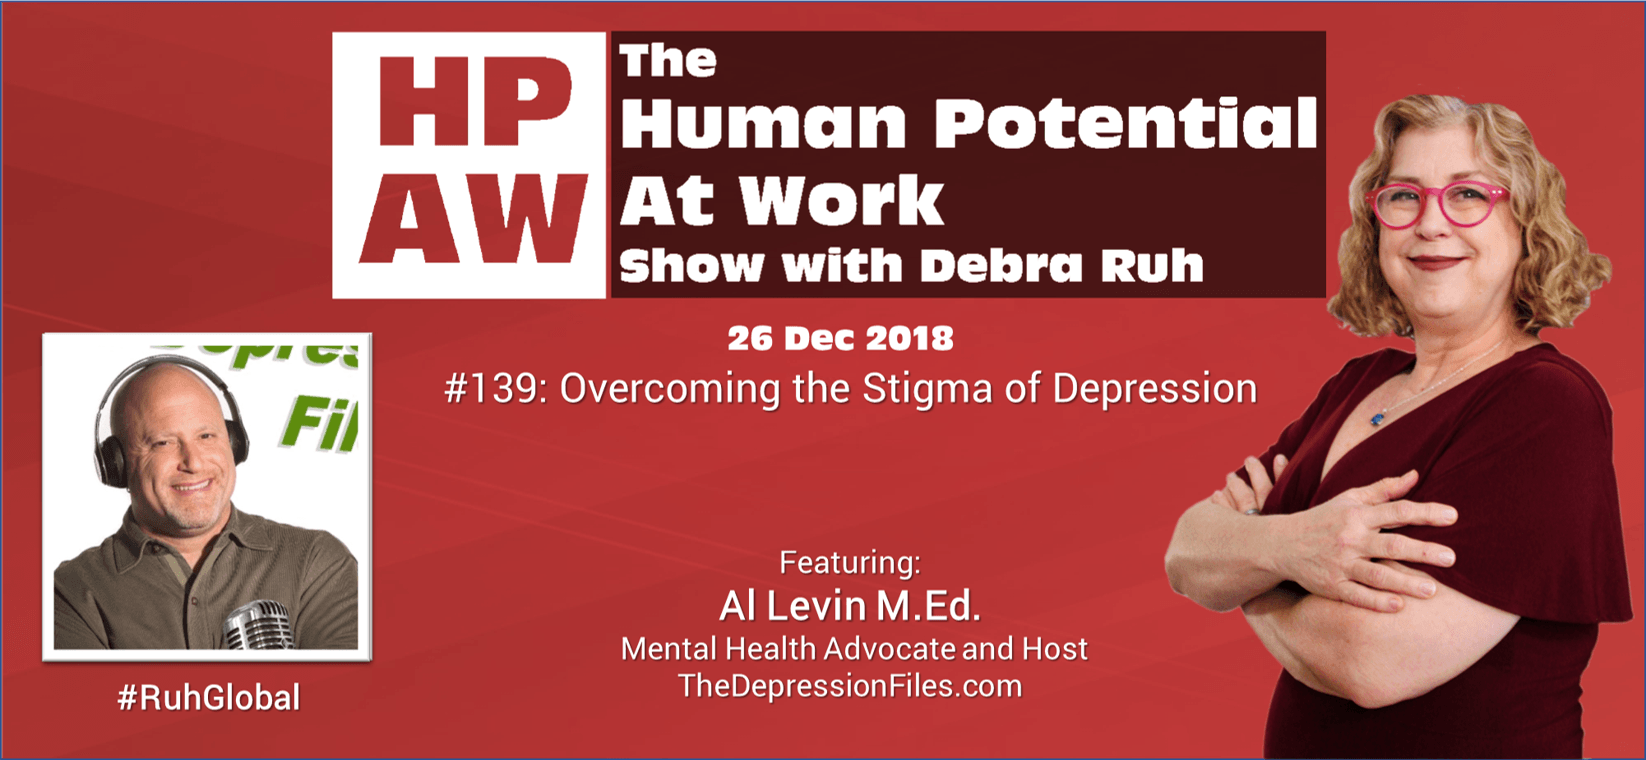 Episode Flyer for #139 Overcoming the Stigma of Depression